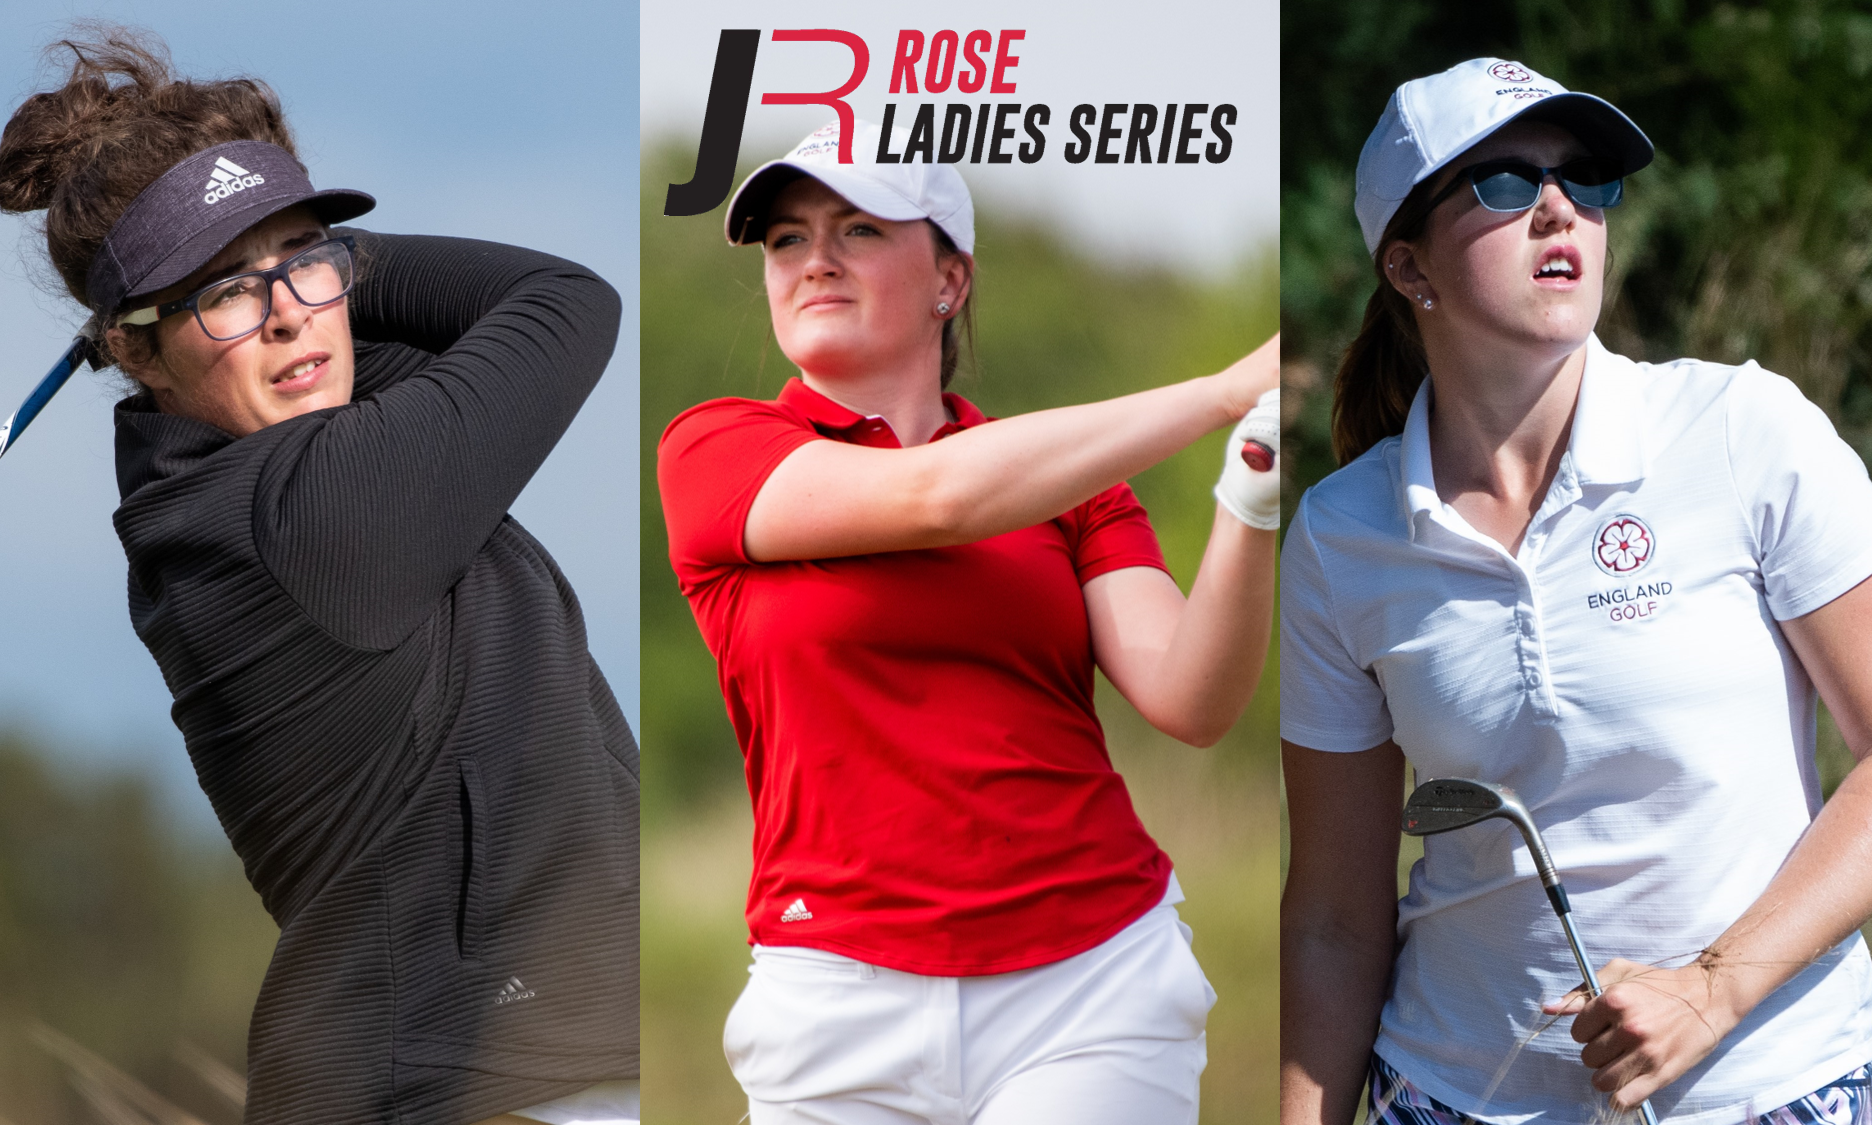 Rose Ladies Series: Williamson ready to enjoy the links effect